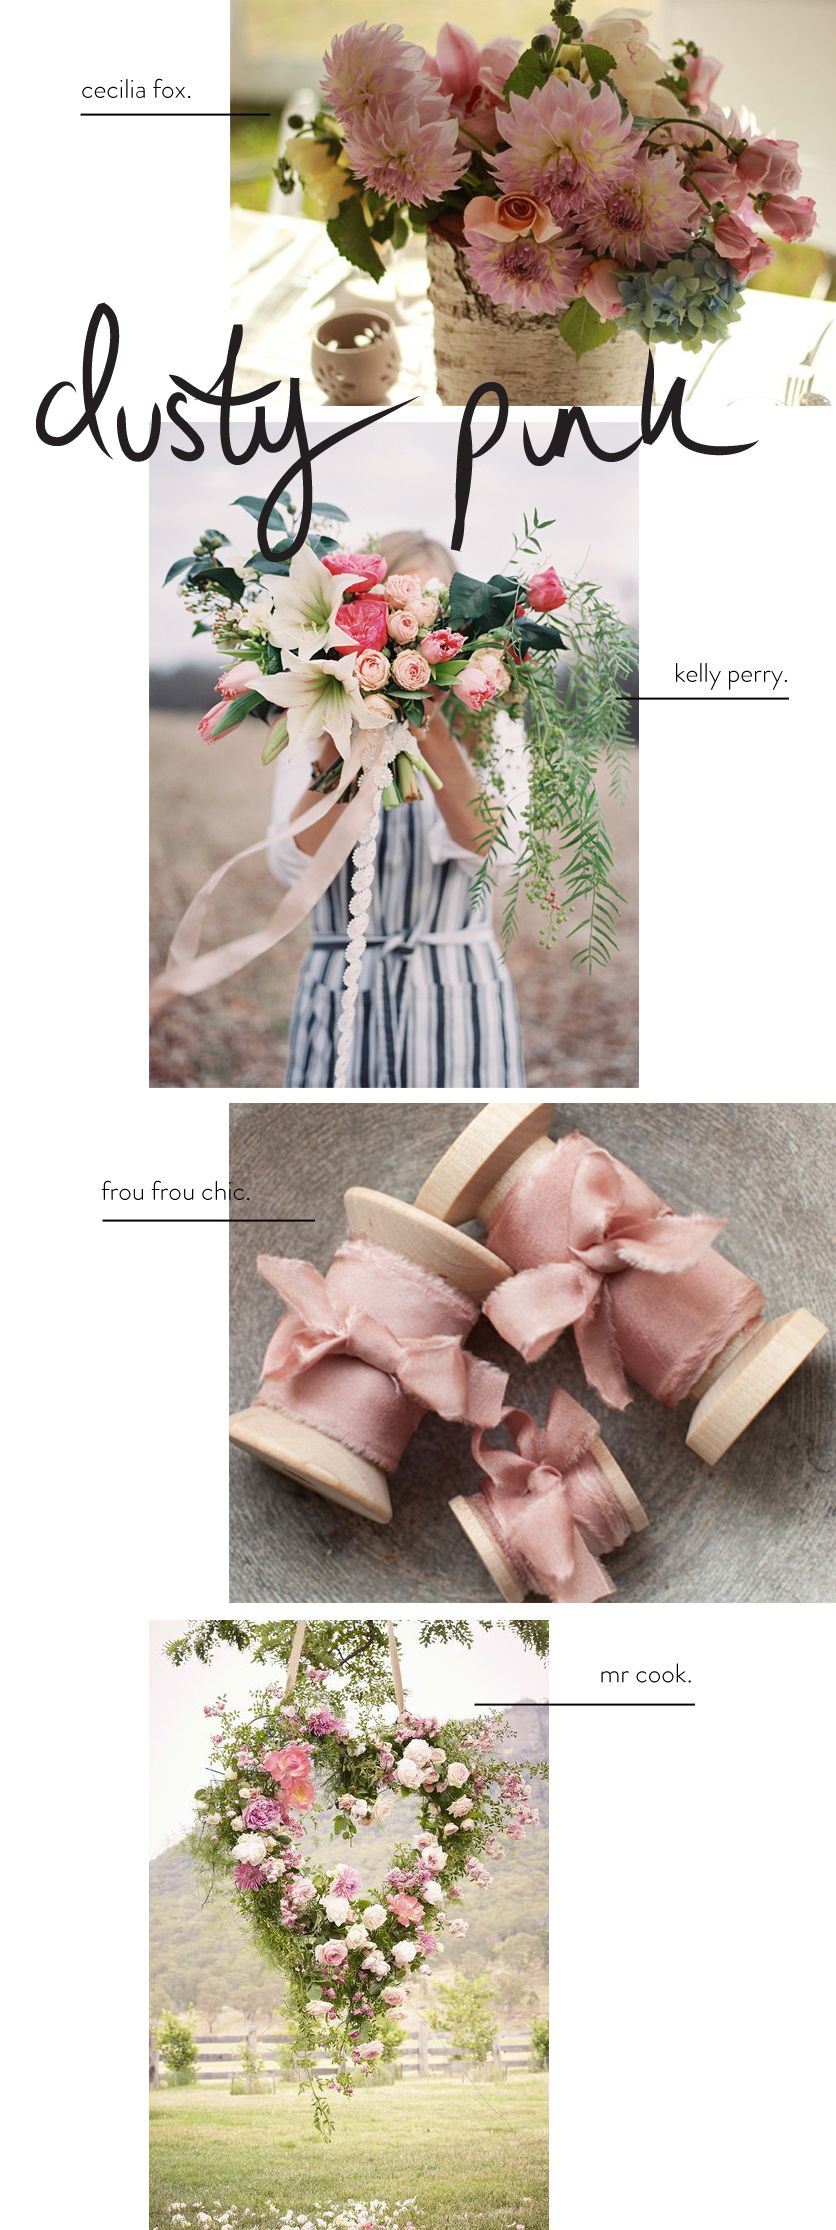 Colour Inspiration - Dusty Pink